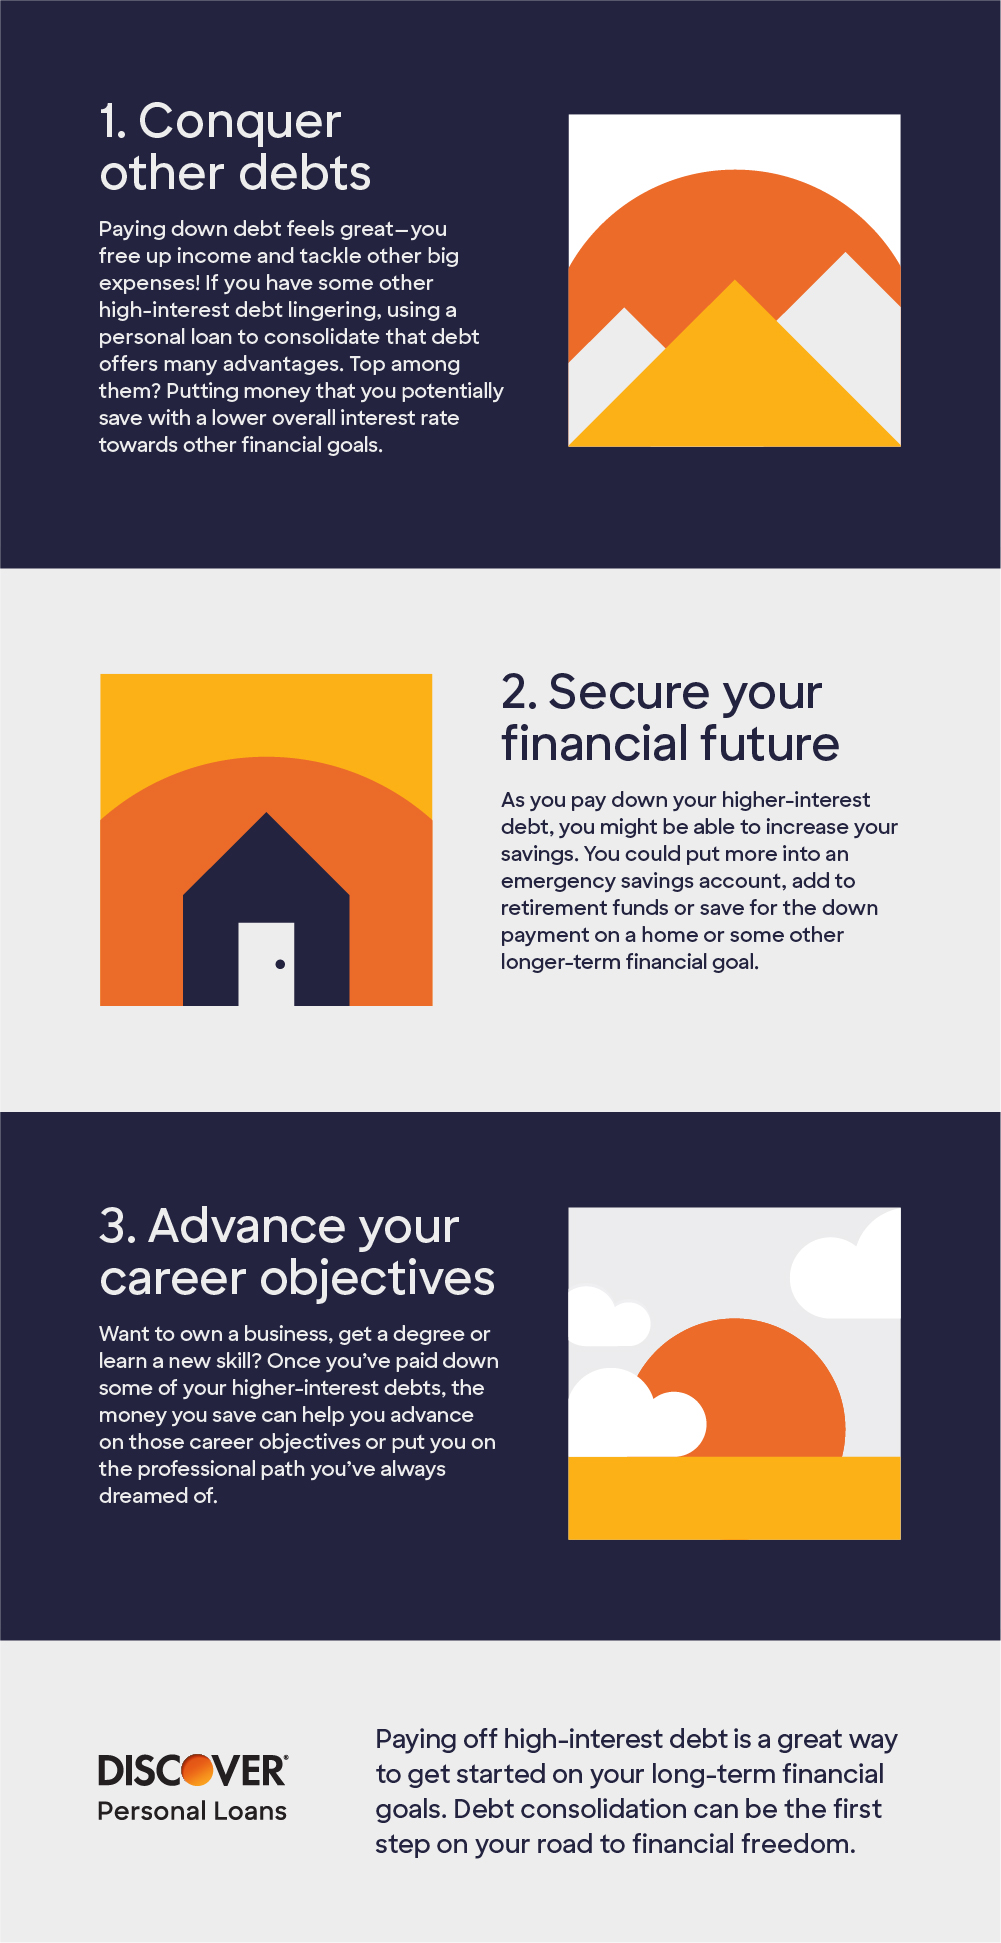 Discover Personal Loans- What to Do After Paying Off Debt Infographic_final.jpg